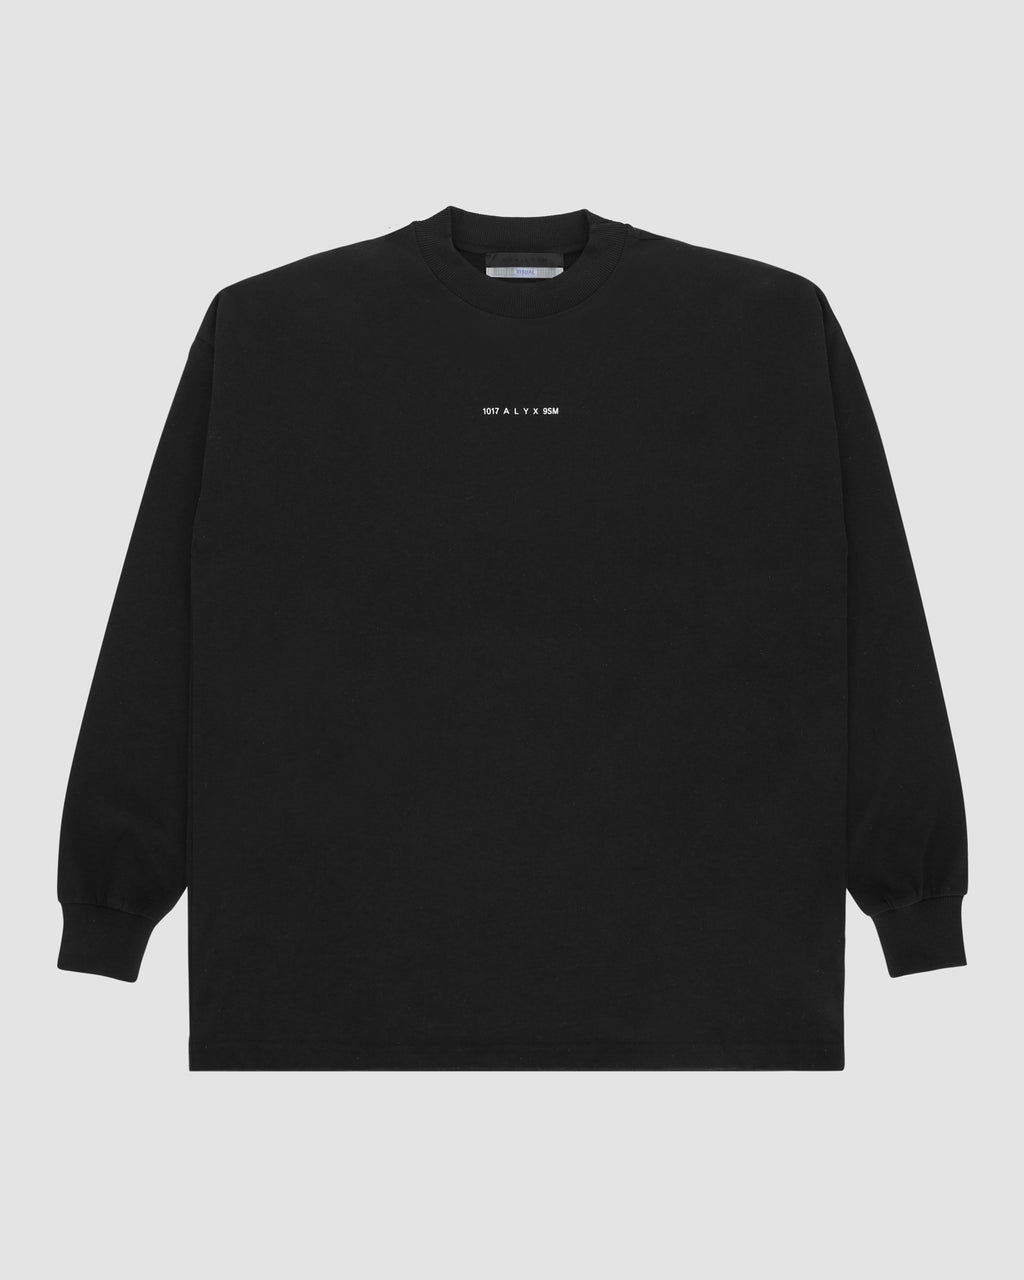 1017 ALYX 9SM | LOGO LS TEE | T-Shirt | Black, F19, TESTINTEGRATION, Visual